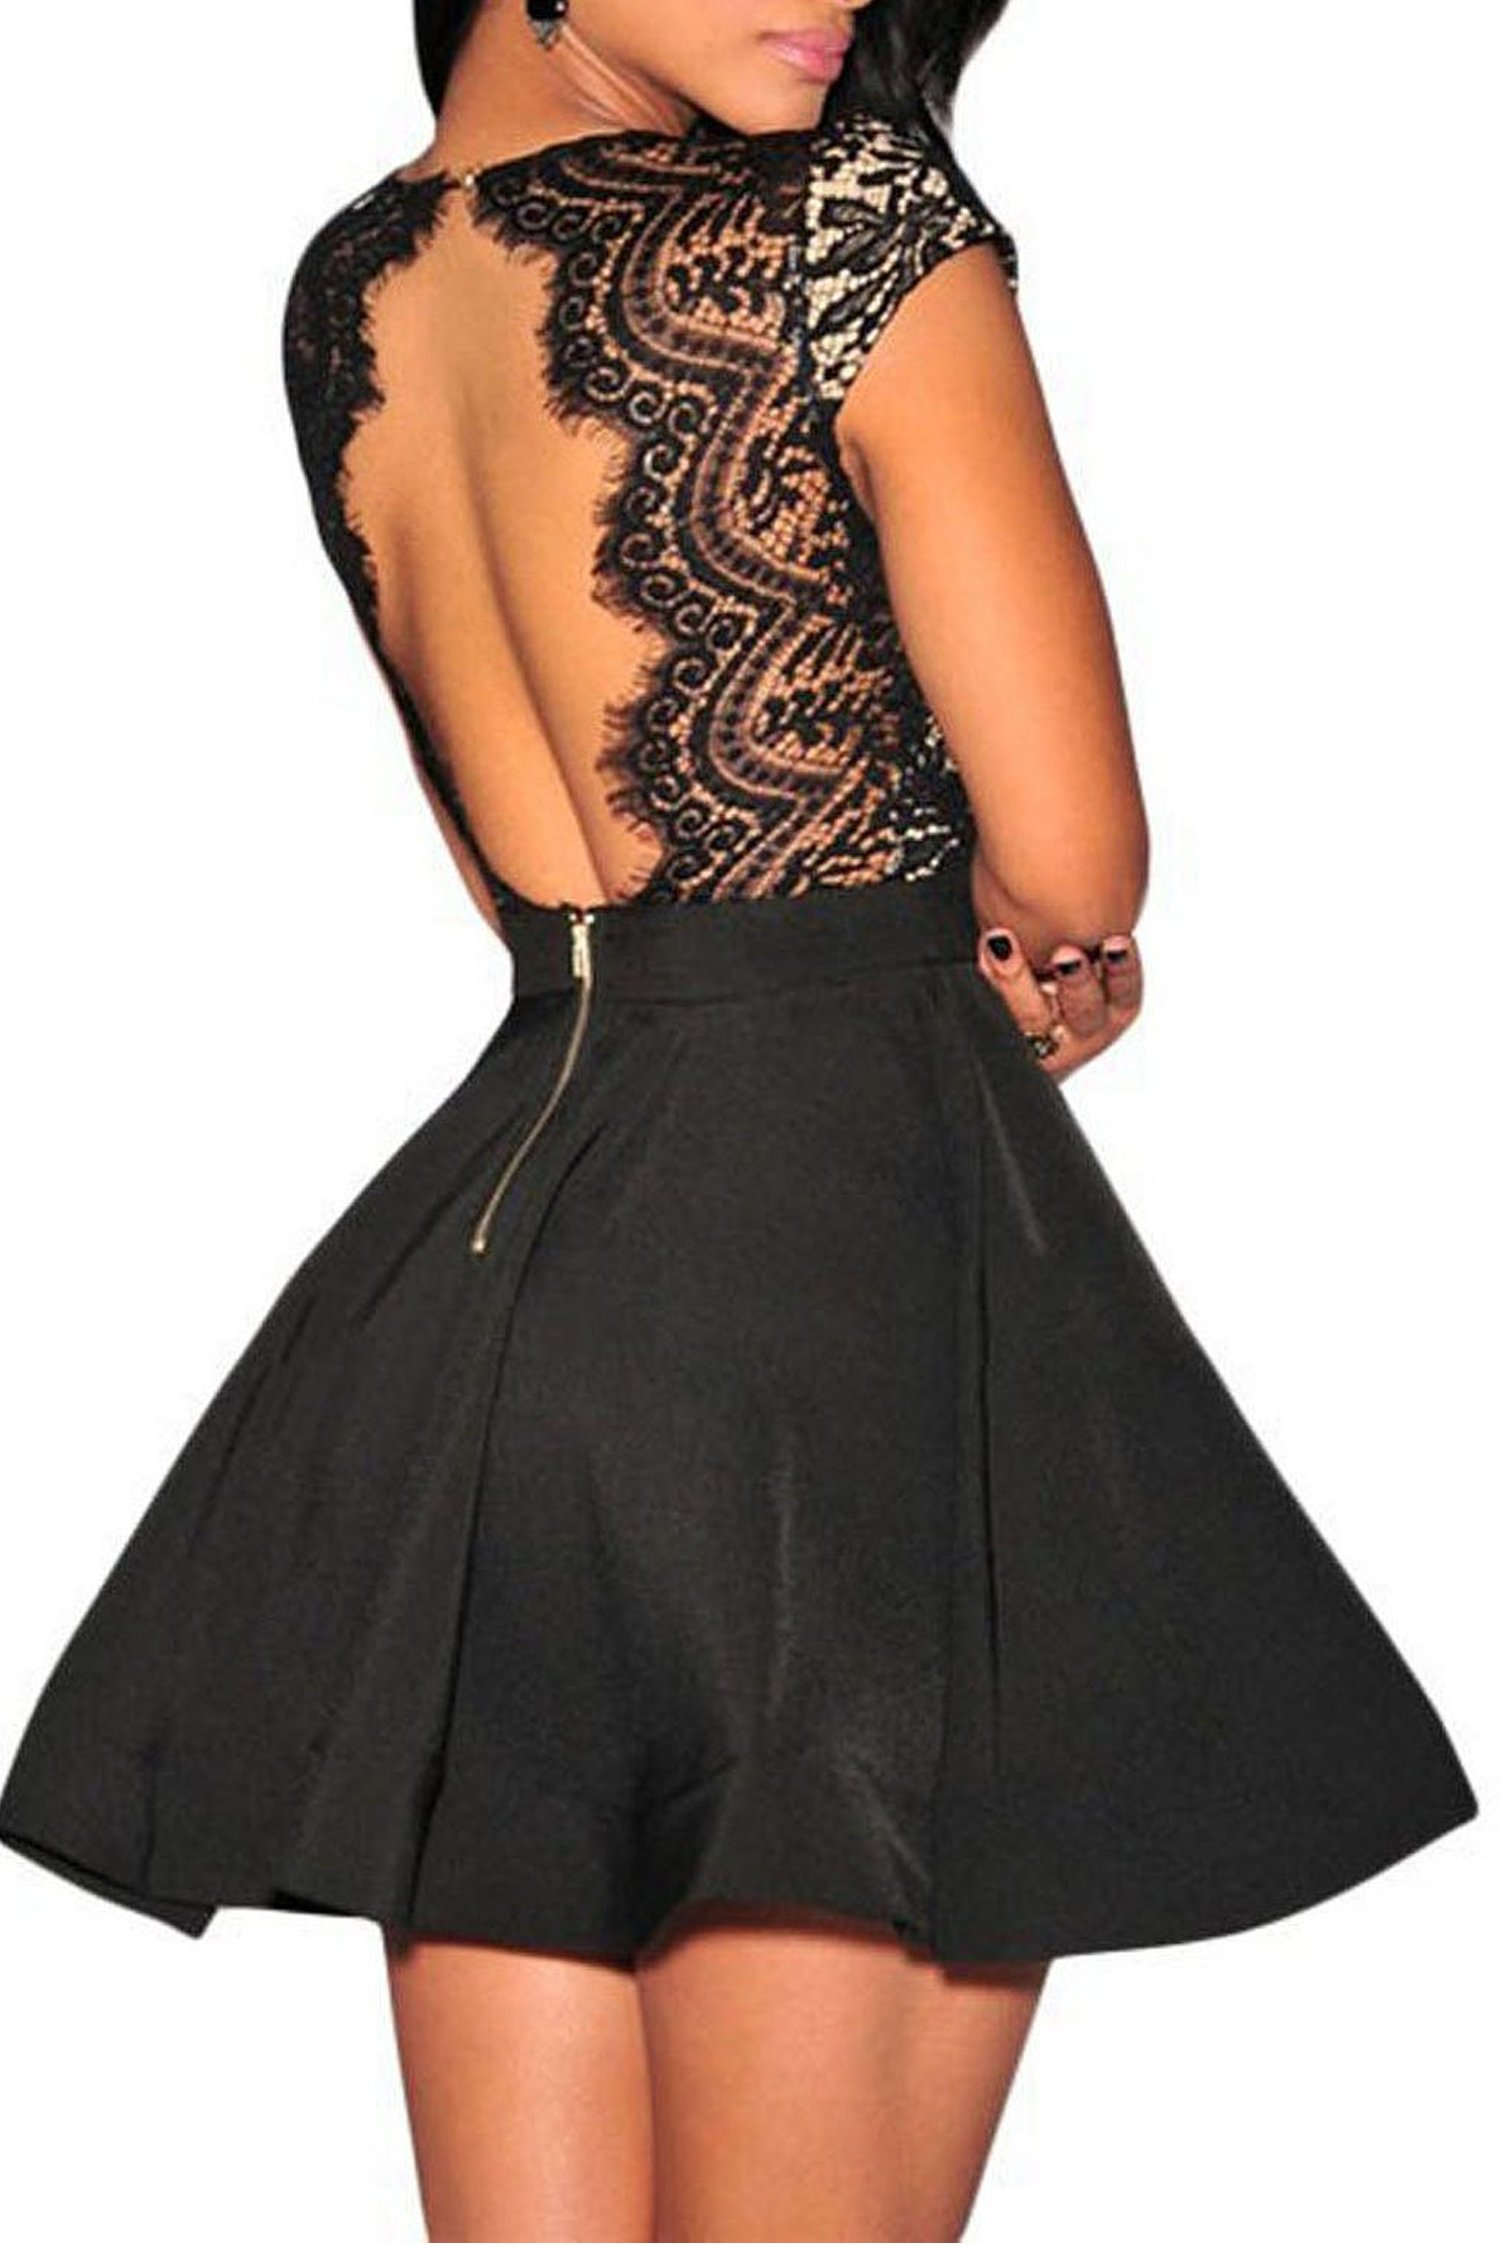 Zeagoo Women's V Neck Lace Open Back Nude Illusion Skater Cocktail Party Dress Black Small by Zeagoo (Image #1)